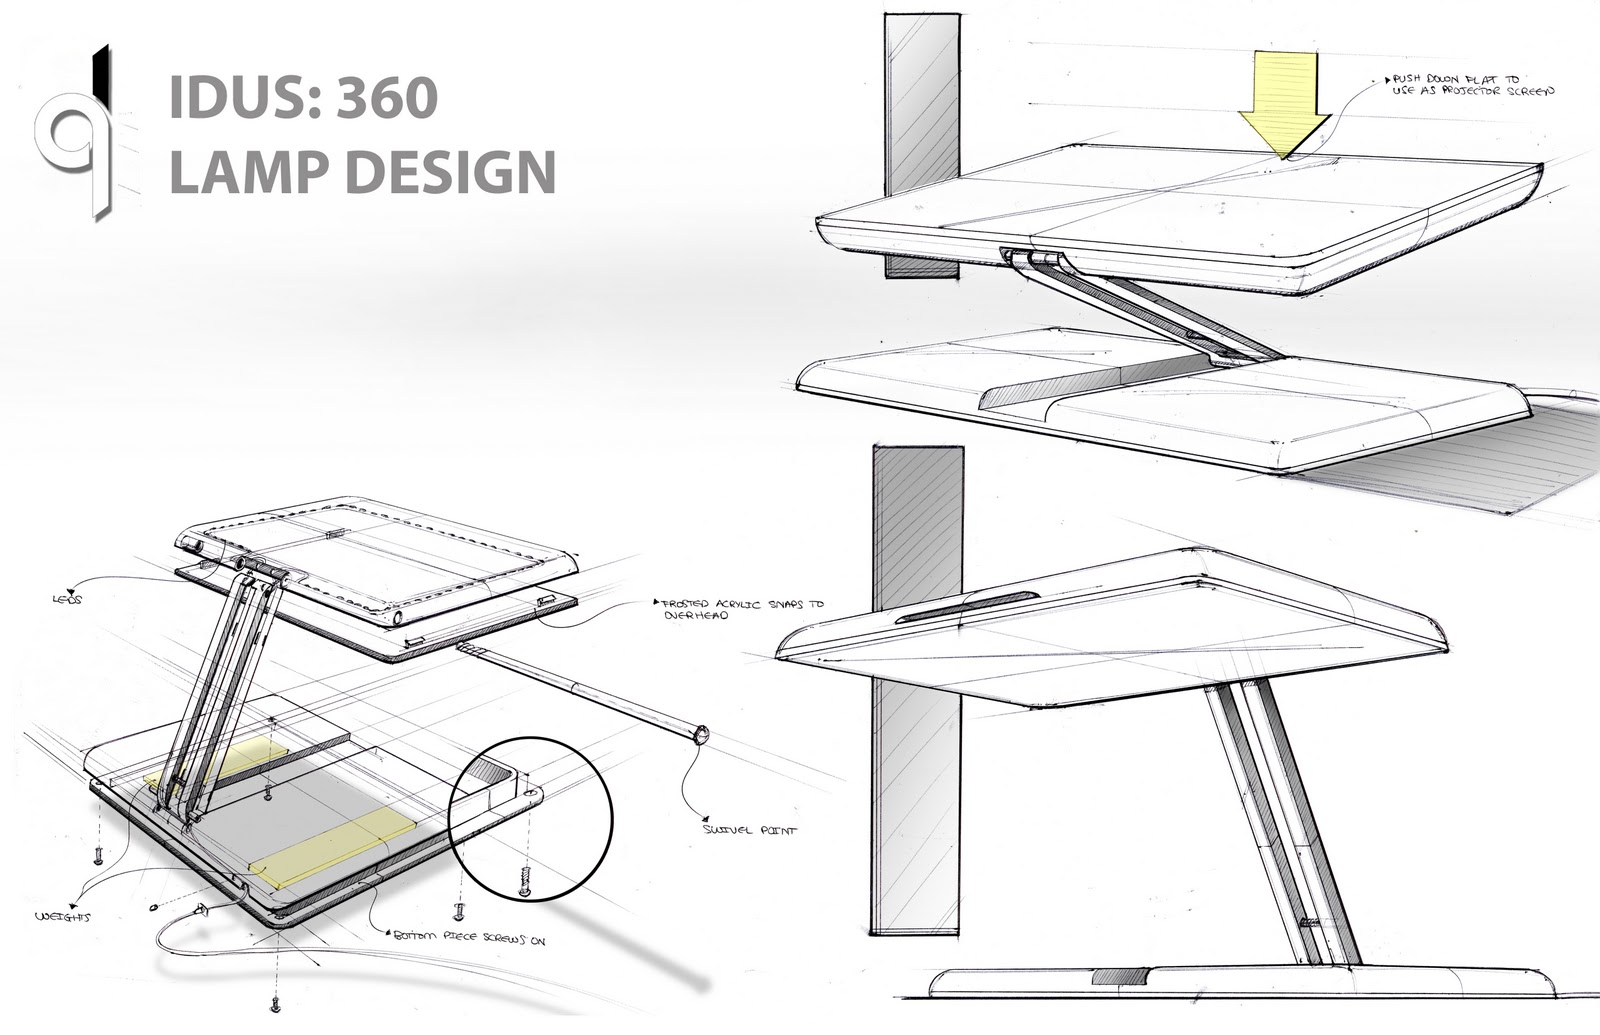 Desklampcompilationg 16001035 sketch pinterest desklampcompilationg 16001035 sketch pinterest sketches product design sketching and product design geotapseo Gallery